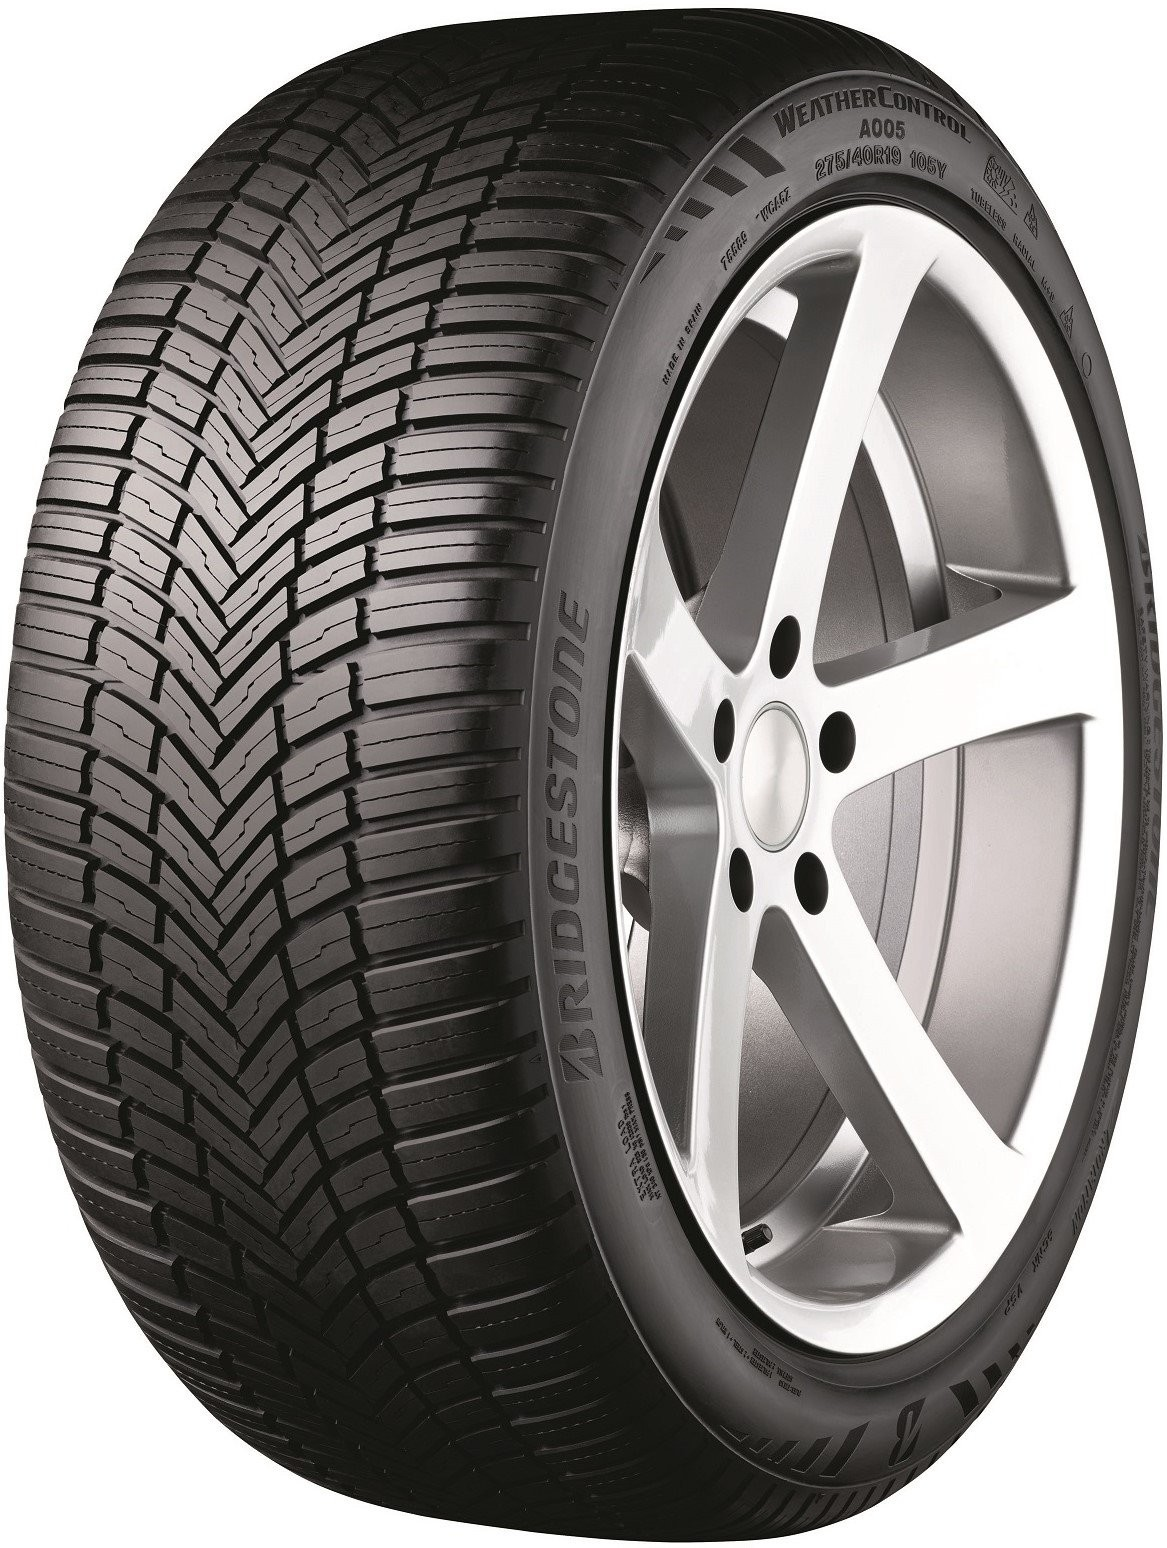 Bridgestone Weather Control 215/65R16 102V